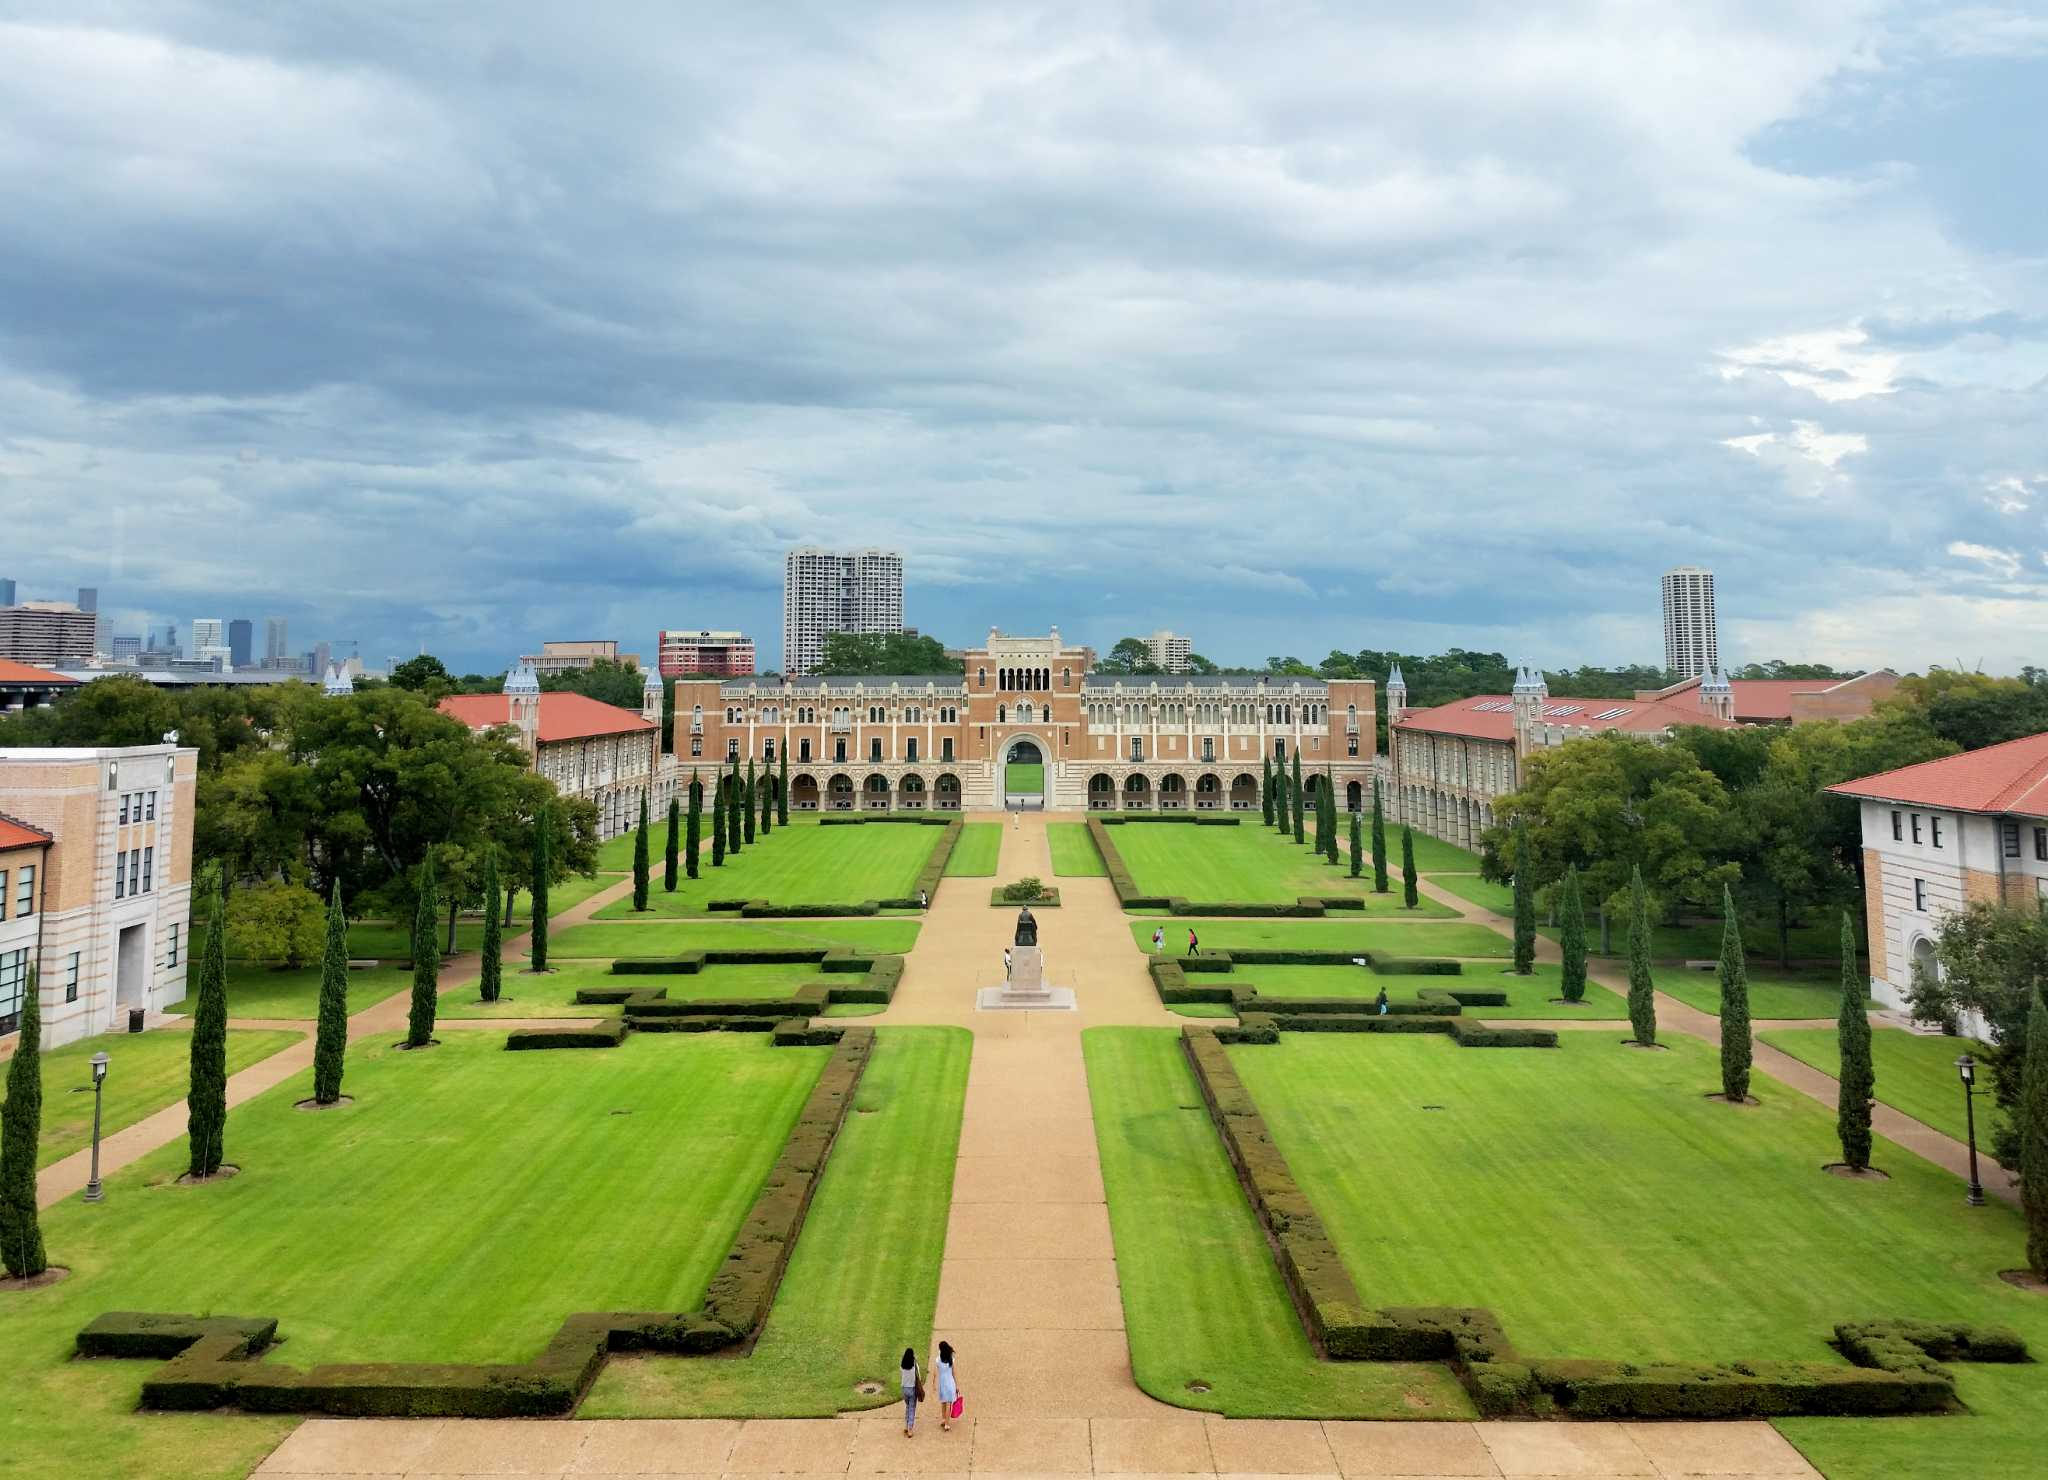 rice university essays After crossing this hurdle, you'll need to impress rice university application readers through their other application requirements, including extracurriculars, essays, and.